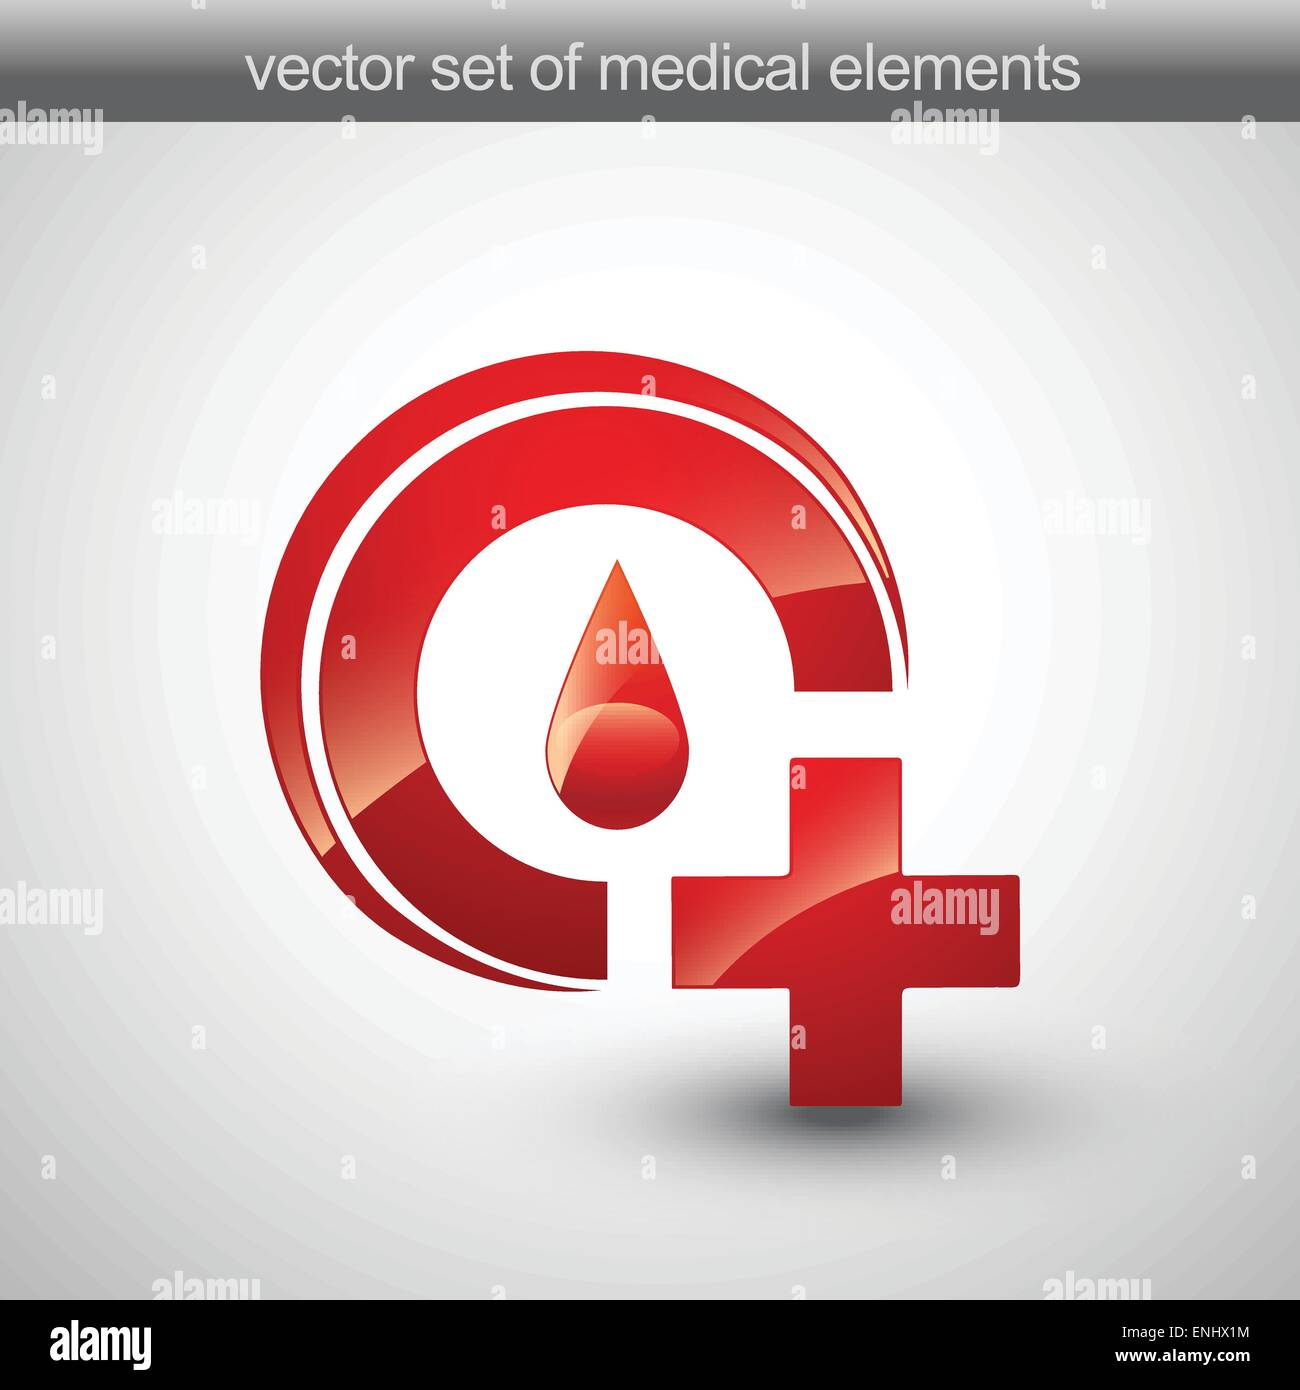 Vector Symbol Of Blood And Plus Sign Stock Vector Art Illustration